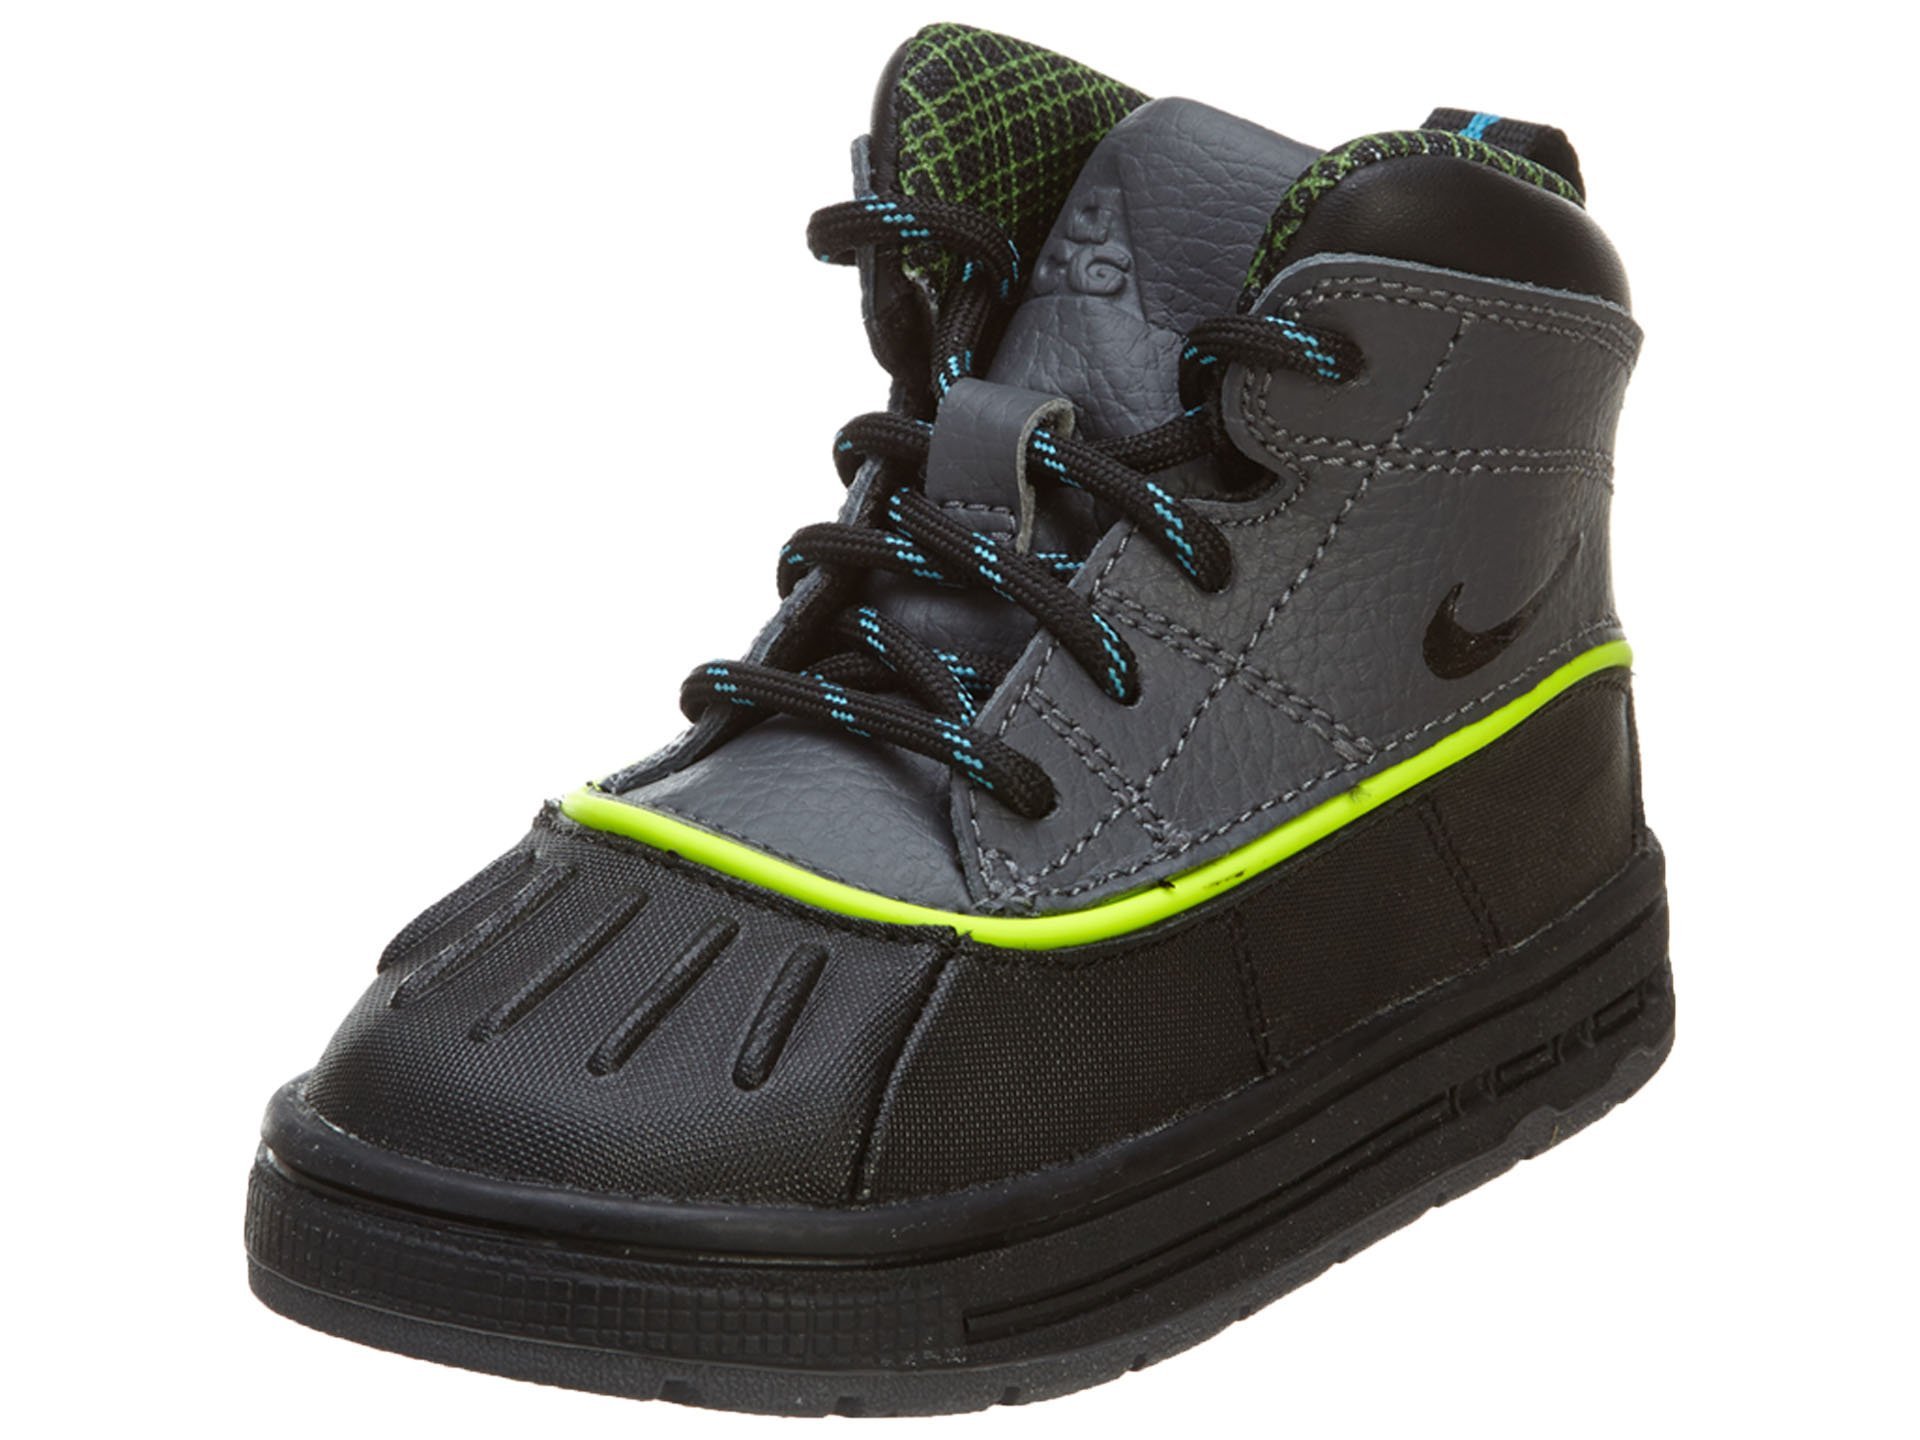 Nike Woodside 2 High (Td) Toddlers Boys/Girls Style: 524874-002 Size: 5 by Nike (Image #1)